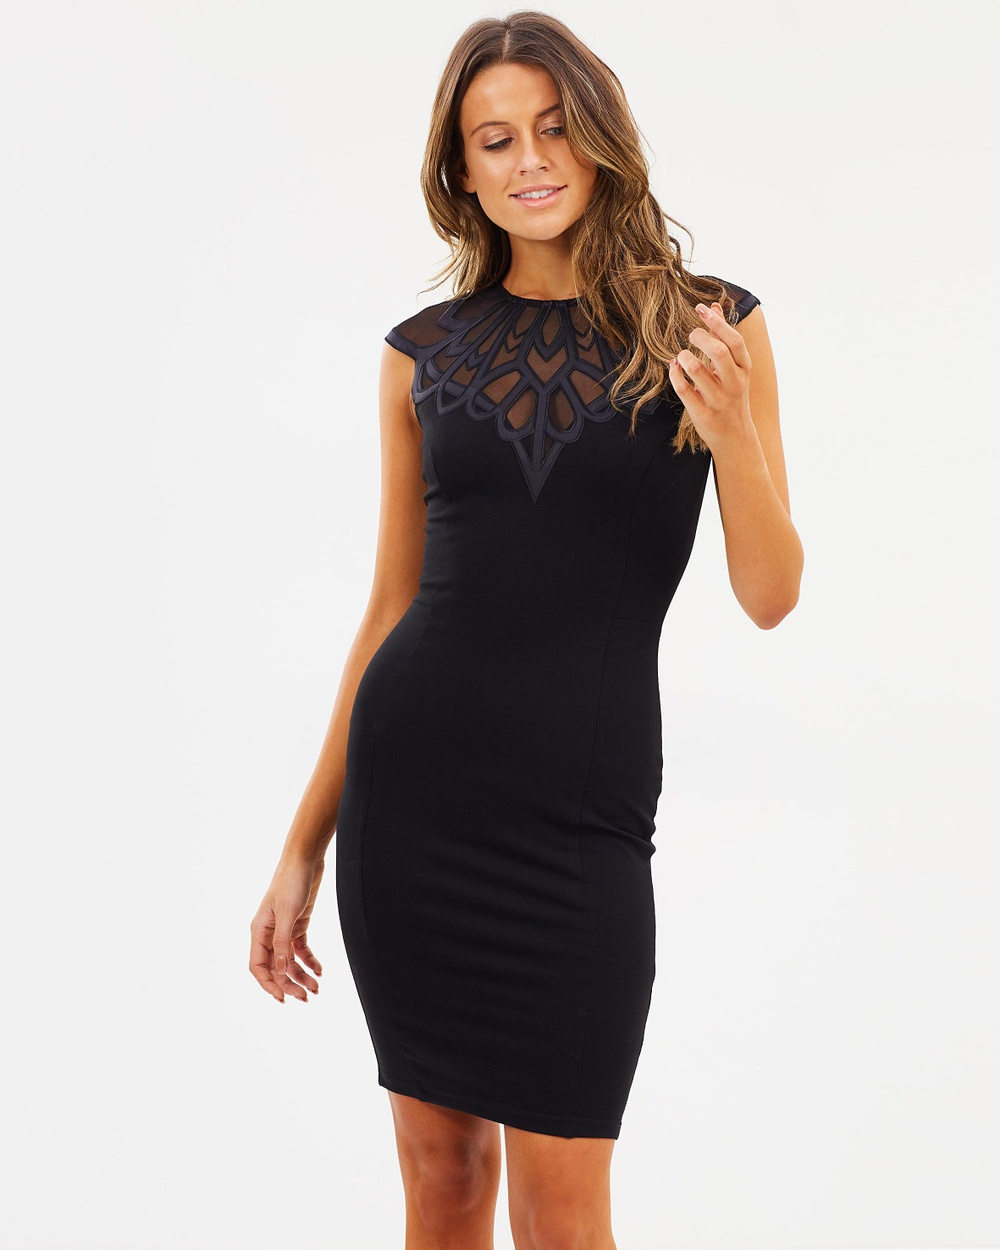 Lipsy Deco Yoke Body Con Dress Bodycon Dresses Black Deco Yoke Body-Con Dress